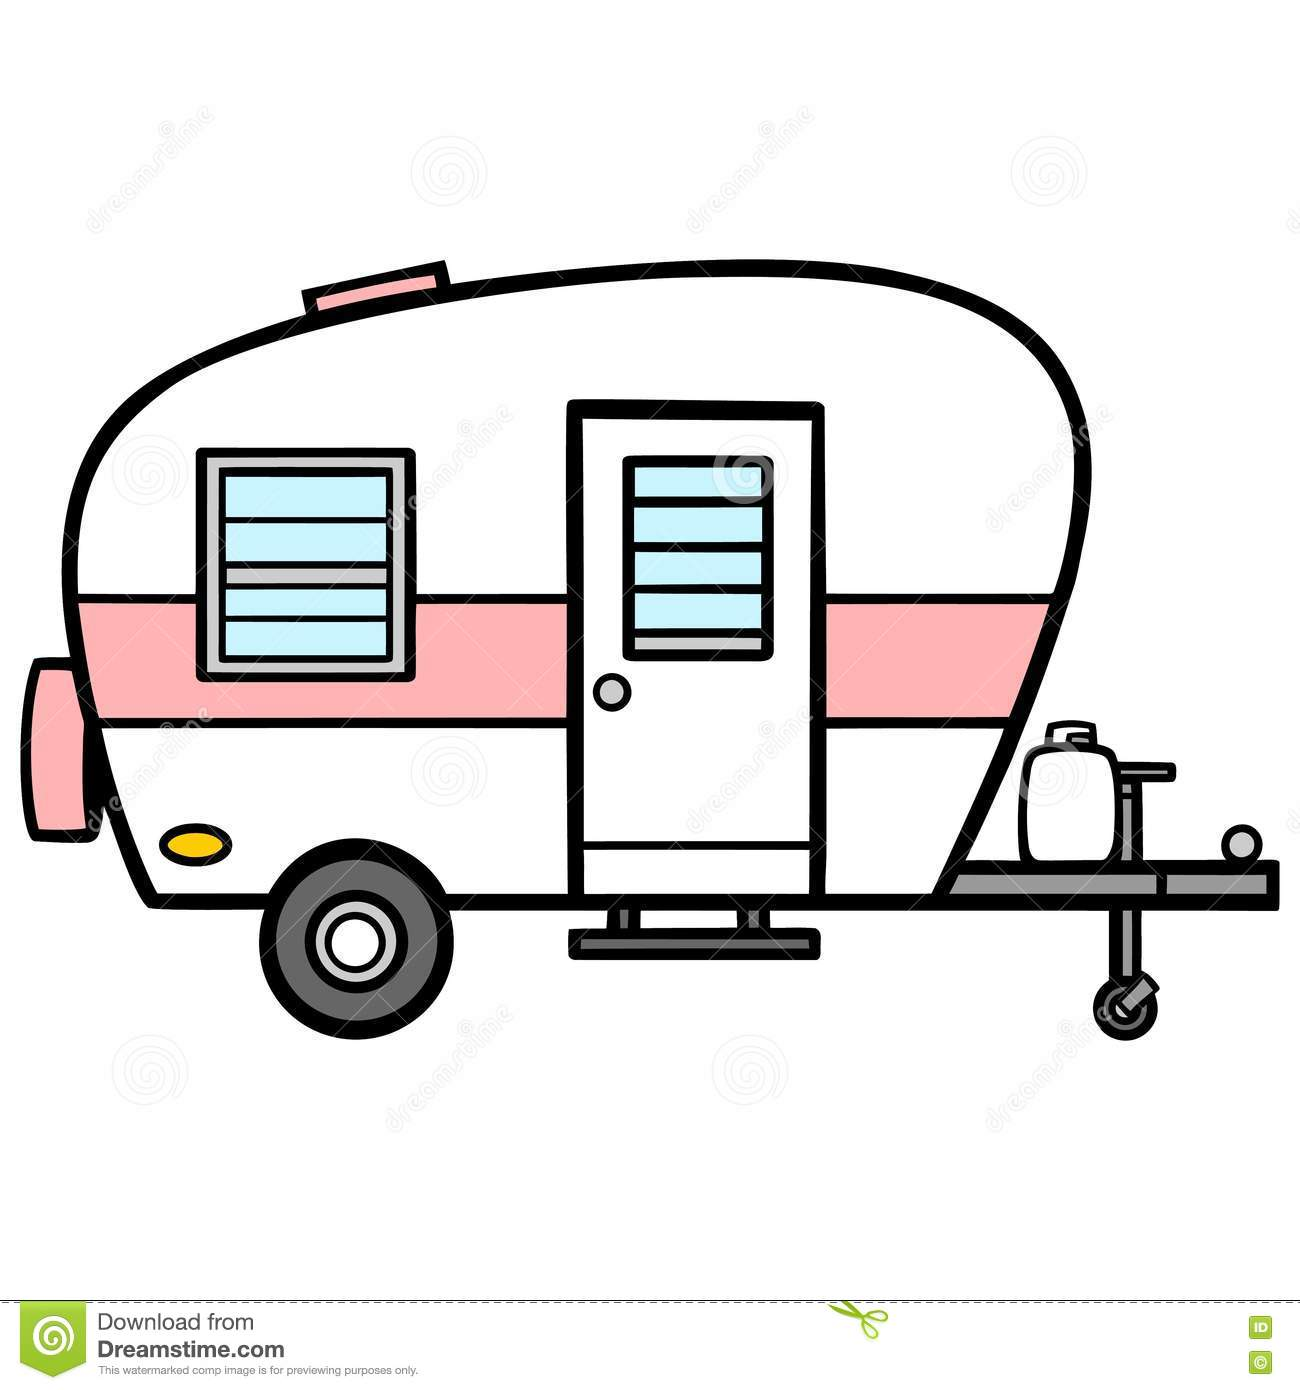 Camper stock vector. Illustration of camp, retro, summer ...